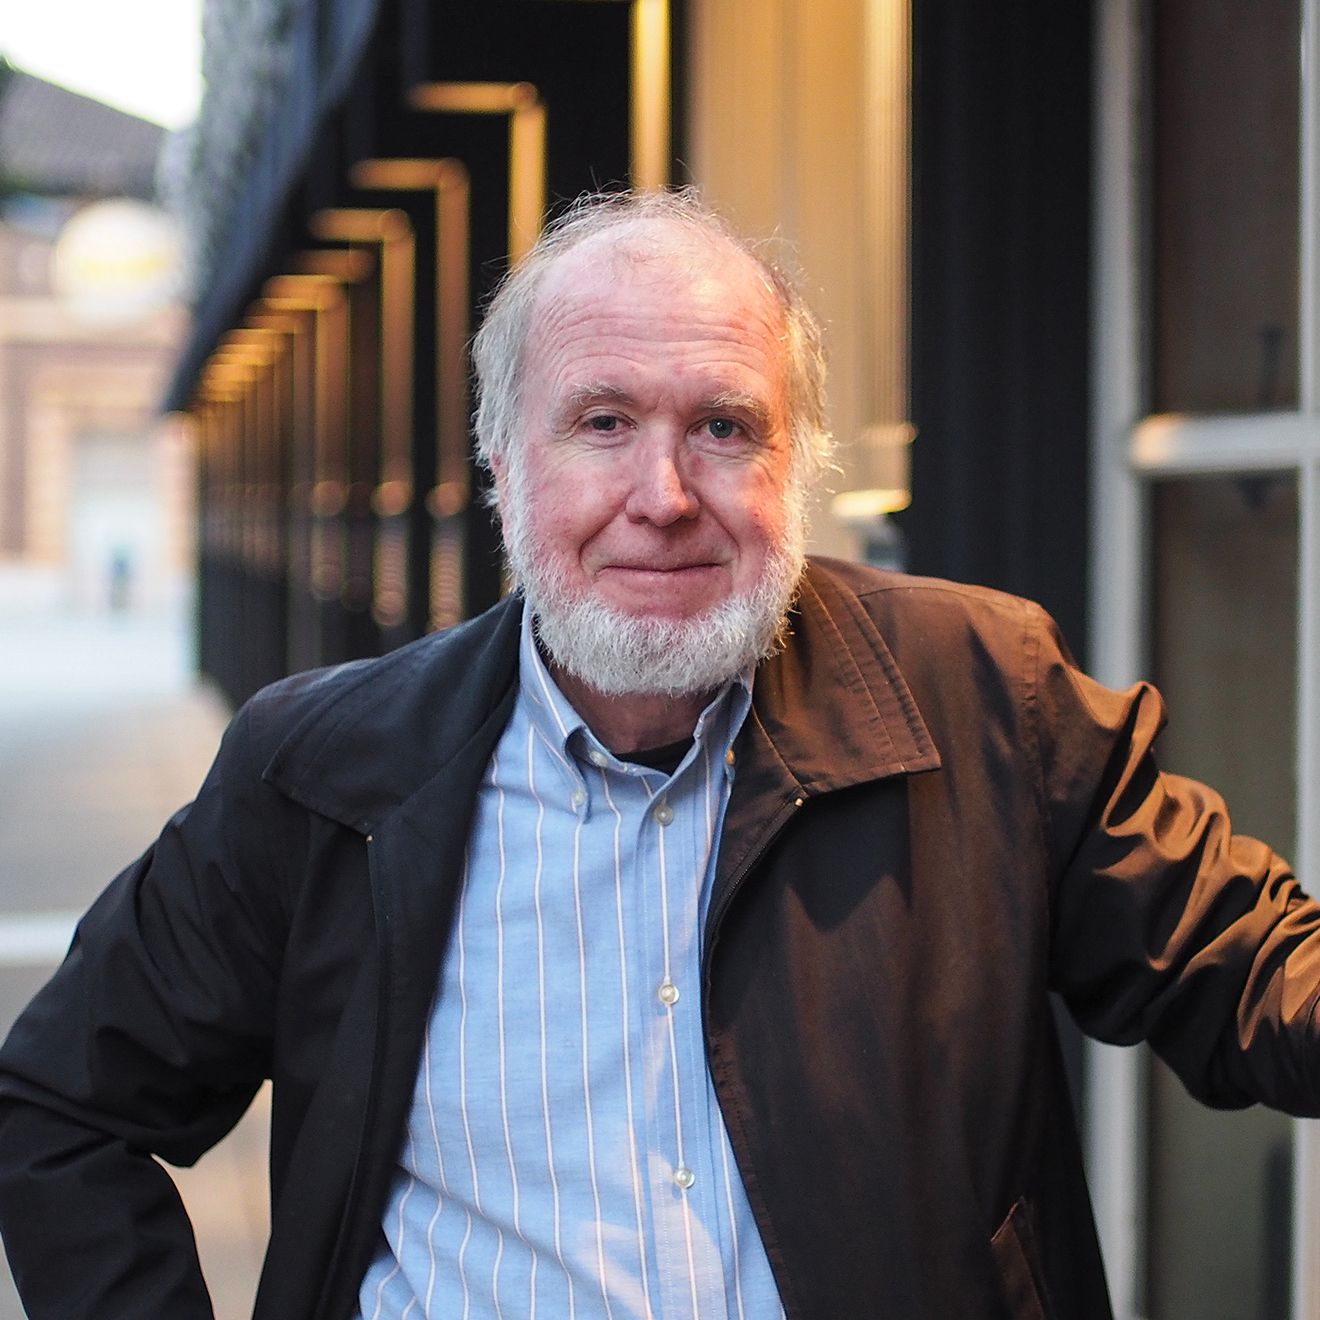 ⭐️ #12 Kevin Kelly of WIRED Magazine and Recomendo: On What Technology Wants and The Future of Virtual Reality